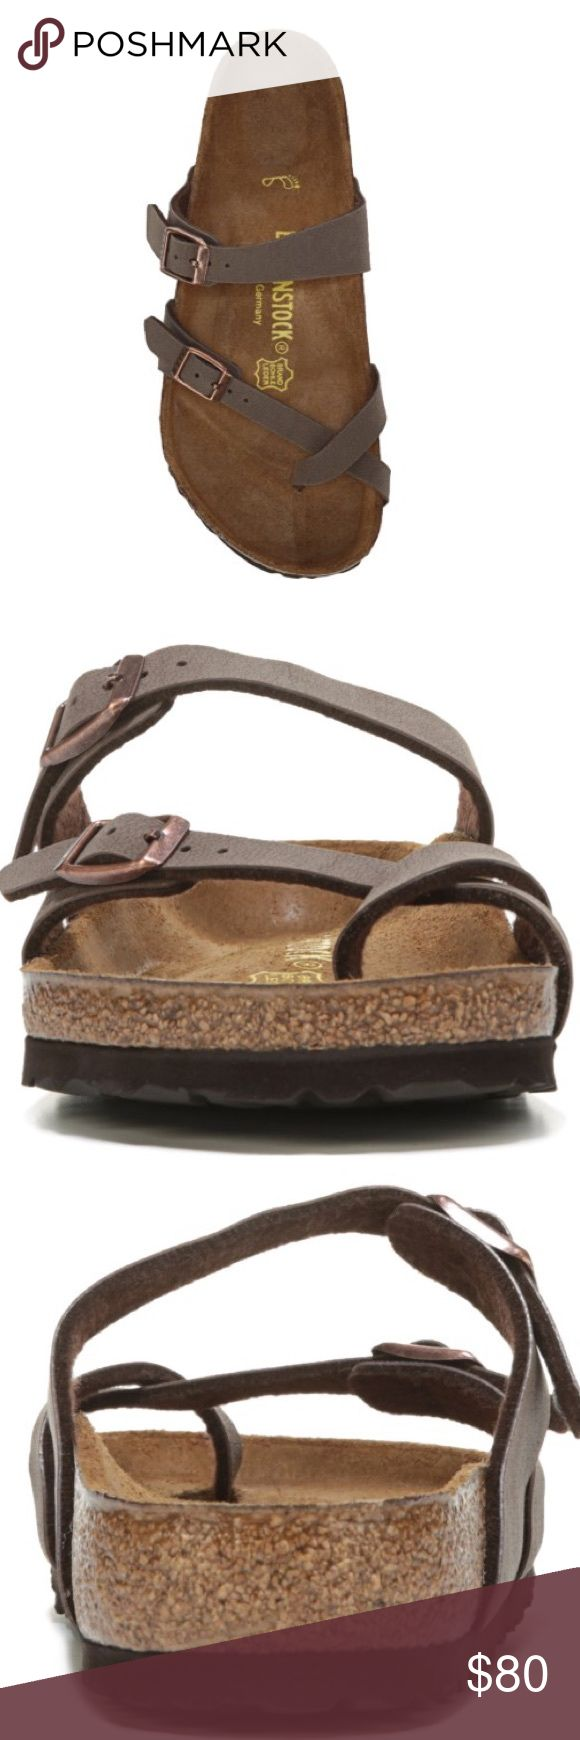 BIRKENSTOCK Women's Mayari Footbed Sandal NEW $95 An elegant, thin-strapped silhouette combines with footbed comfort in the Mayari Footbed Sandal from Birkenstock. NWT NWOB Faux nubuck leather Birkibuc upper in a casual footbed sandal style with an open toe Fabric toe-loop for added comfort Textured leather-like finish wipes clean with mild soap and water Two adjustable straps with buckle closures Slide entry Smooth lining, classic Birkenstock footbed featuring pronounced arch support and a…